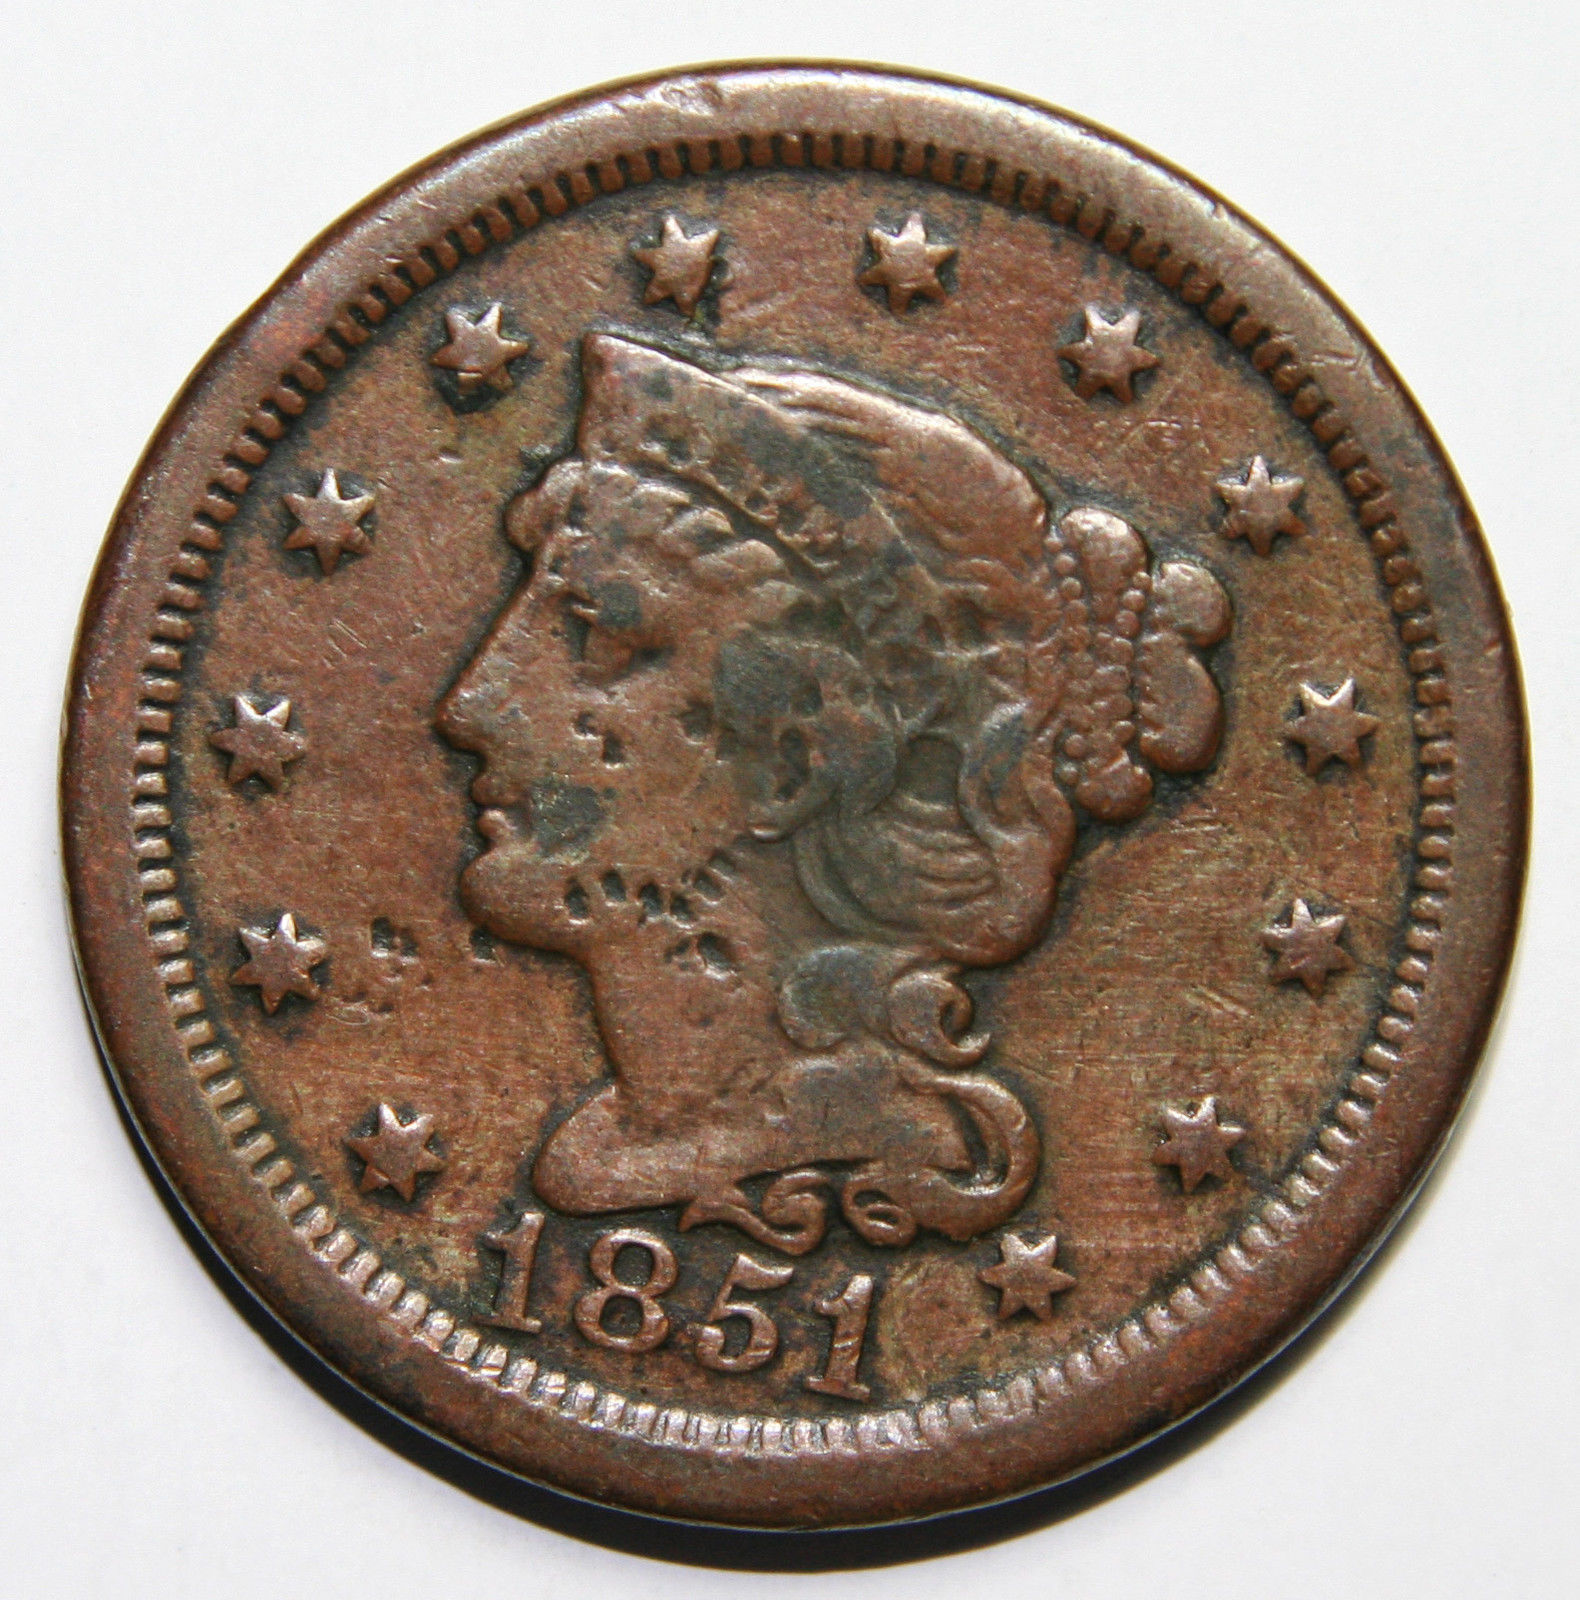 1851 Large Cent Liberty Braided Hair Head Coin Lot # A 1592